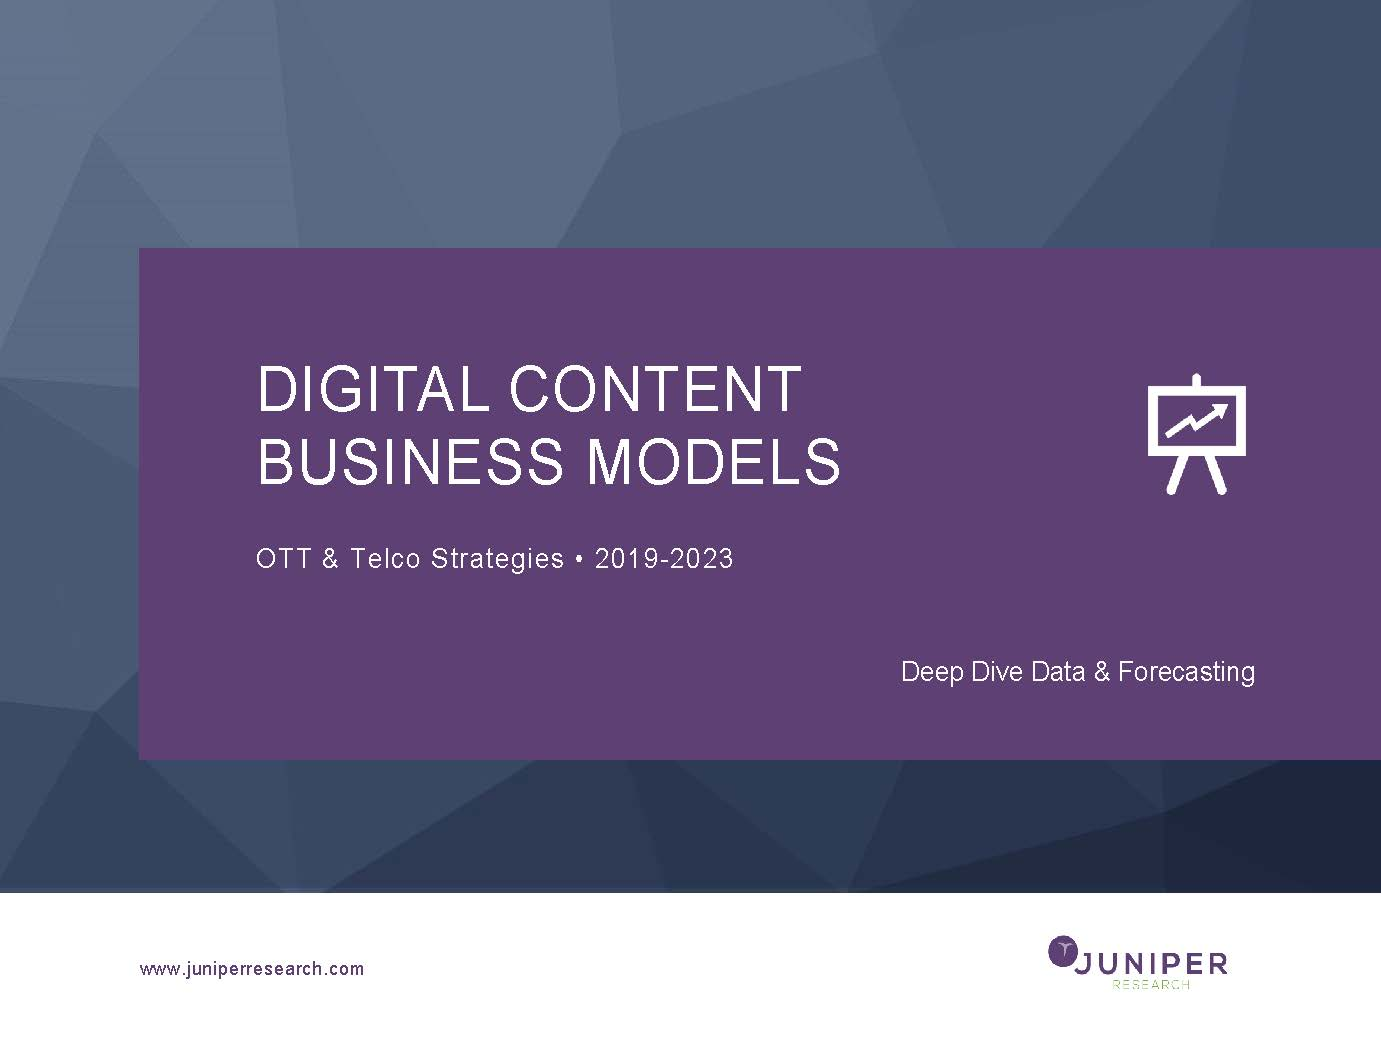 Digital Content Business Models - Deep Dive Data & Forecasting 2019-2023